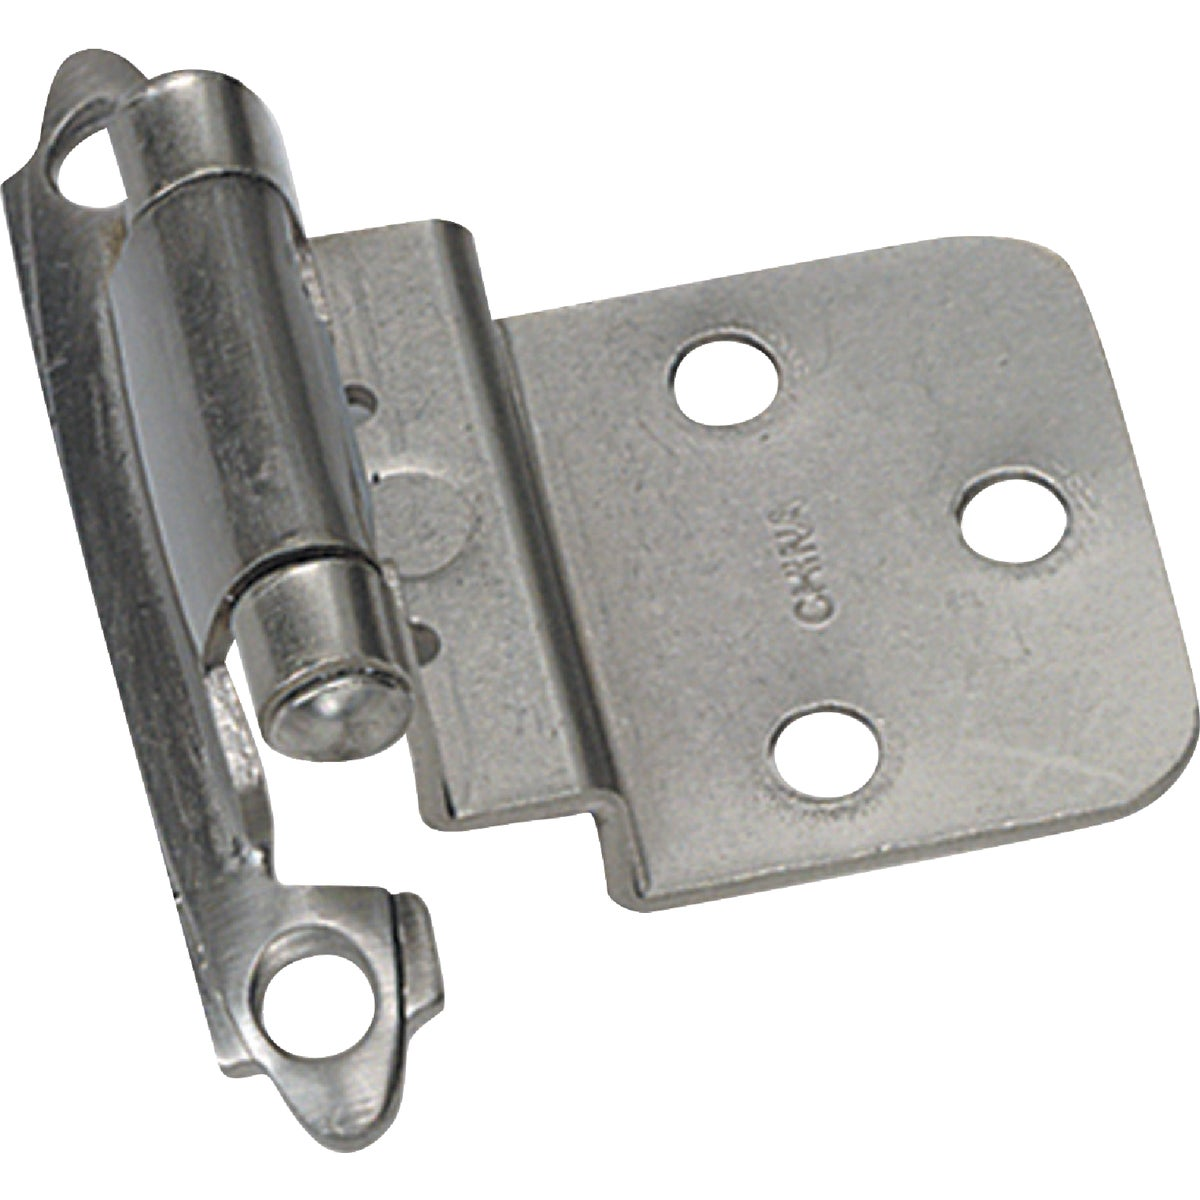 SC HINGE - 28639 by Laurey Co